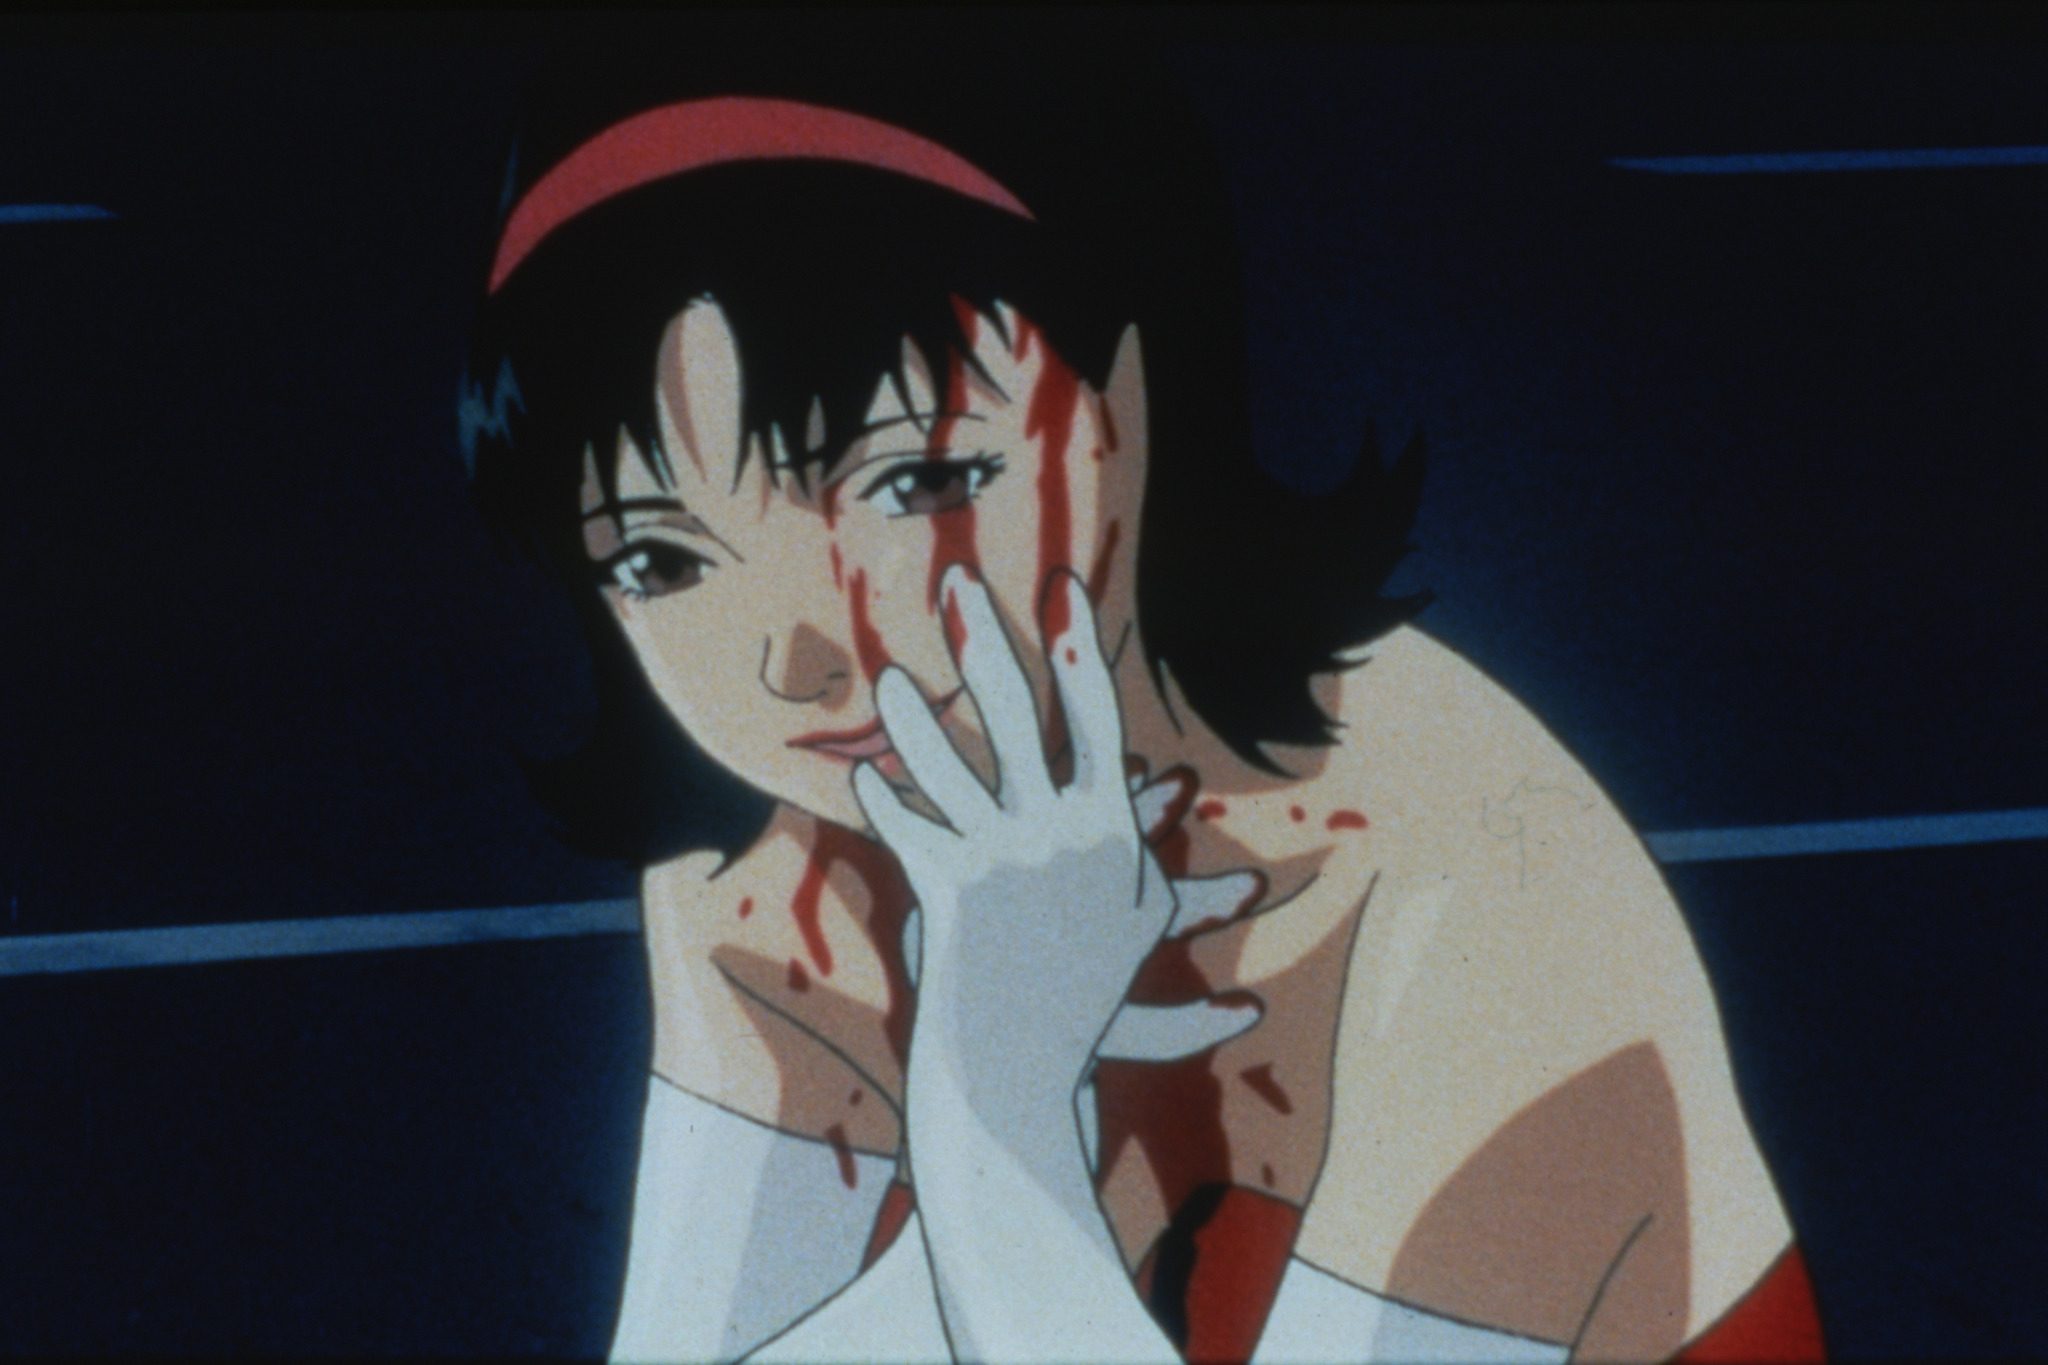 Best animated films: Perfect Blue